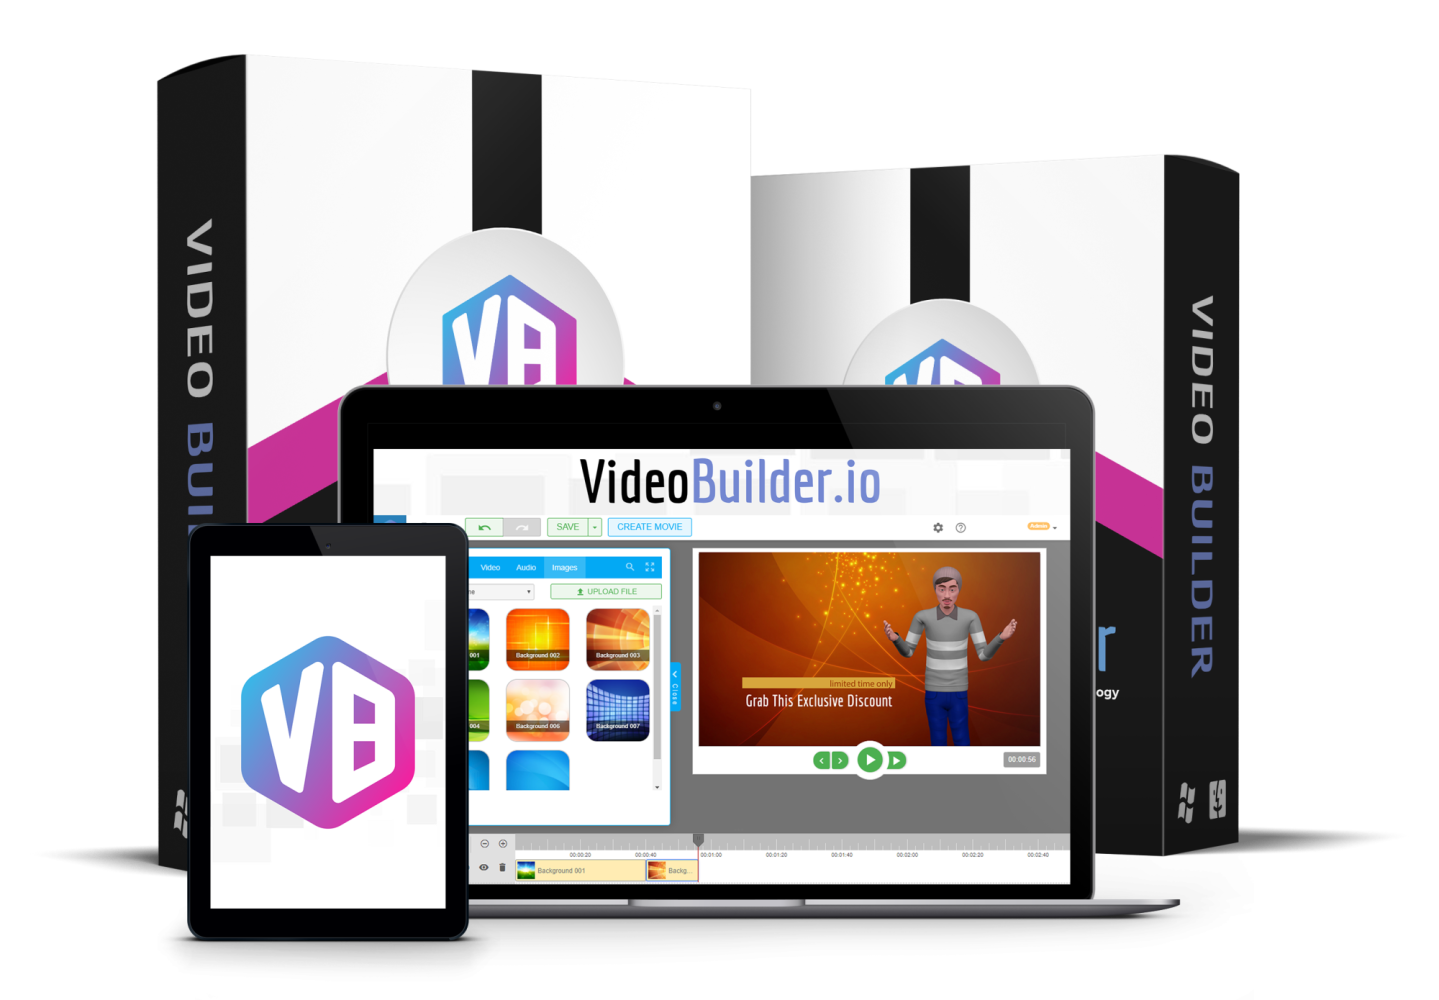 Revolutionary Video Maker App With